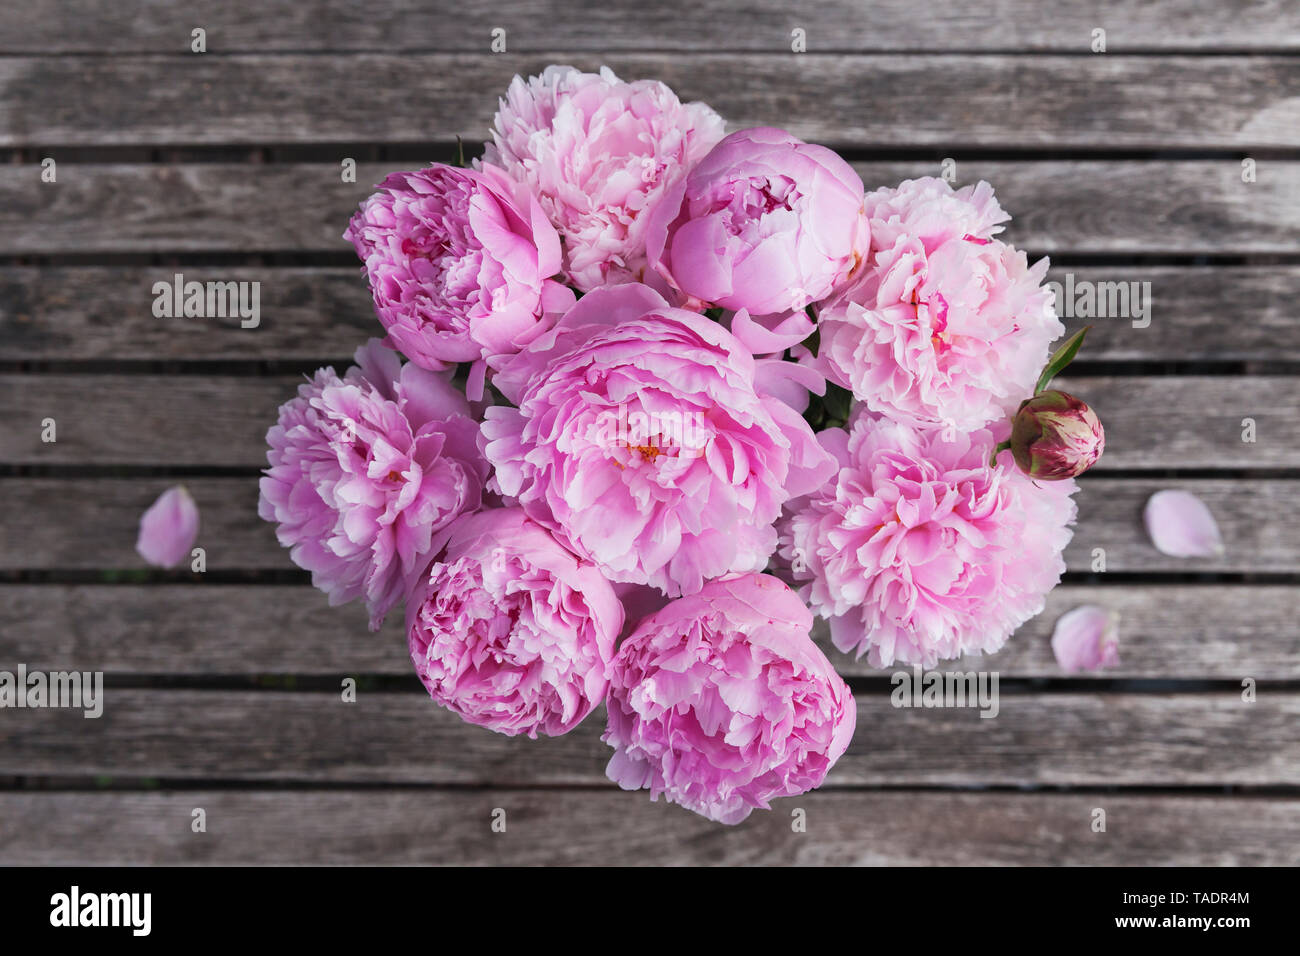 Pink peony bouquet on garden table - Stock Image